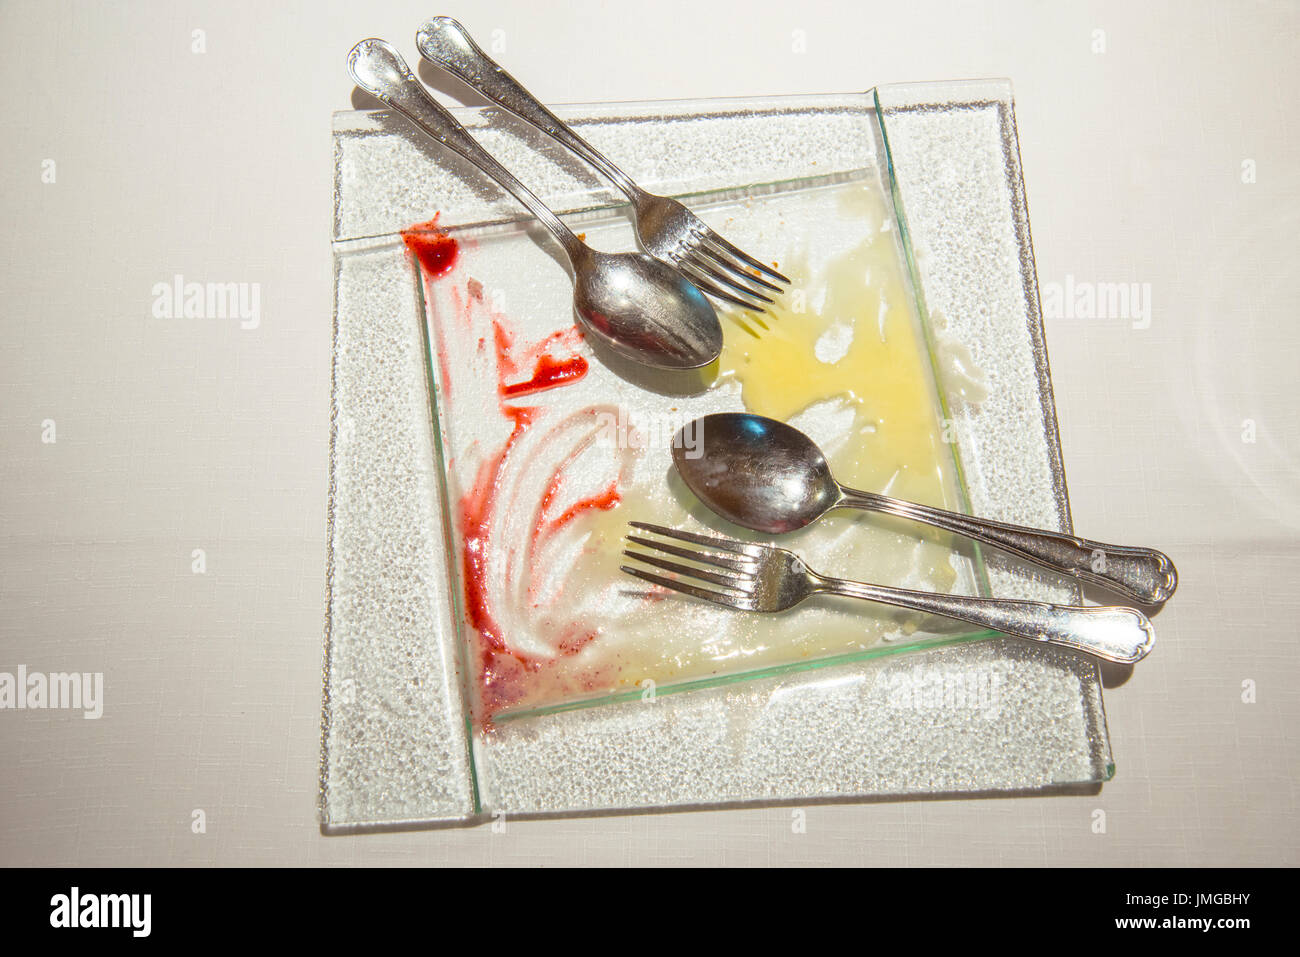 Empty dessert dish with two spoons and two forks. - Stock Image